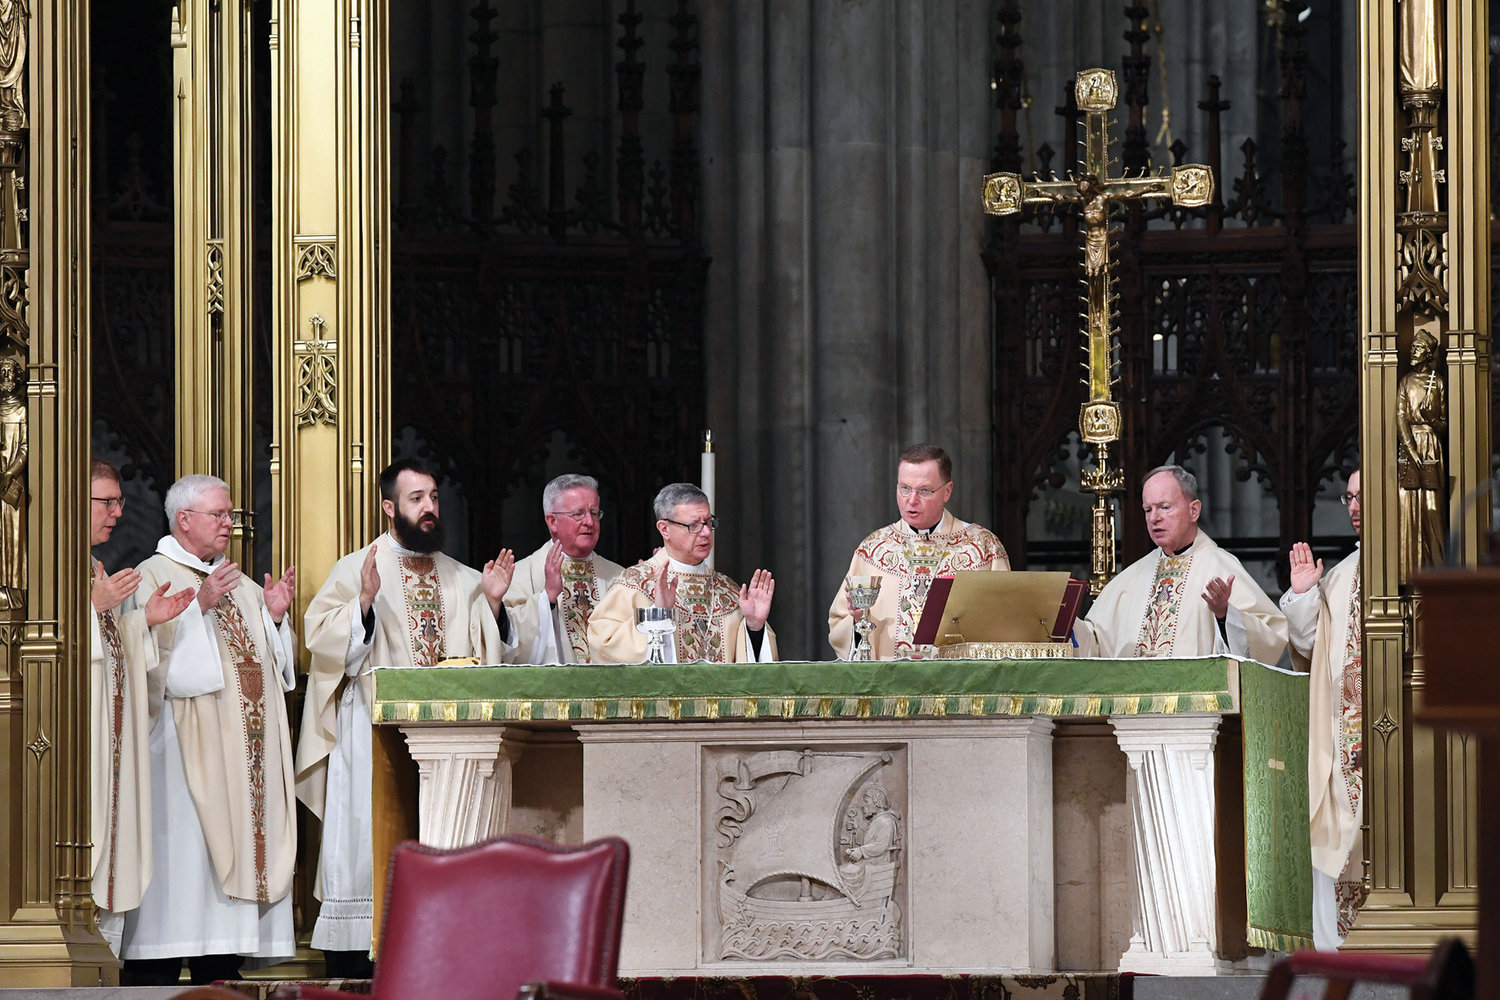 "Auxiliary Bishop Edmund J. Whalen, holding chalice, was the principal celebrant of a Jan. 15 Mass in St. Patrick's Cathedral marking the 100th anniversary of the birth of Cardinal John O'Connor. The bishop was joined at the altar by concelebrants including Auxiliary Bishop Gerardo J. Colacicco, near left. Bishop Whalen remembered the cardinal, who died in May 2000, as ""a wonderful priest and a fearless leader."""